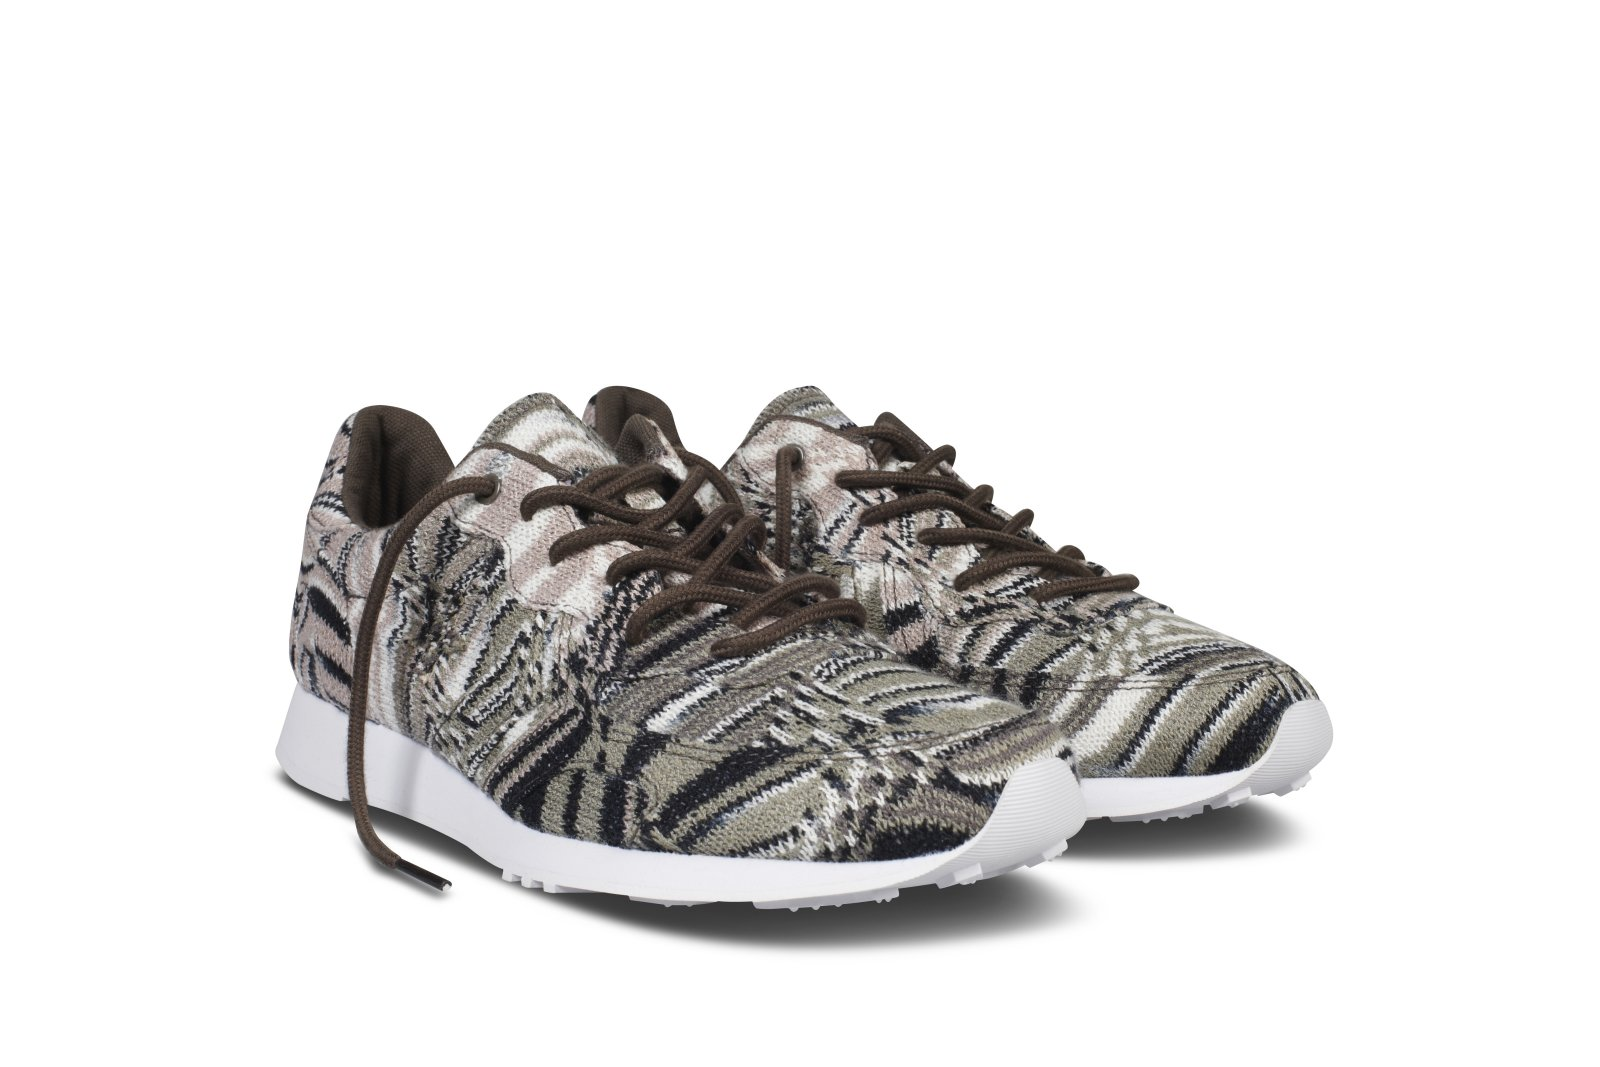 b84d5232edffcd Missoni x Converse Auckland Racer Collection